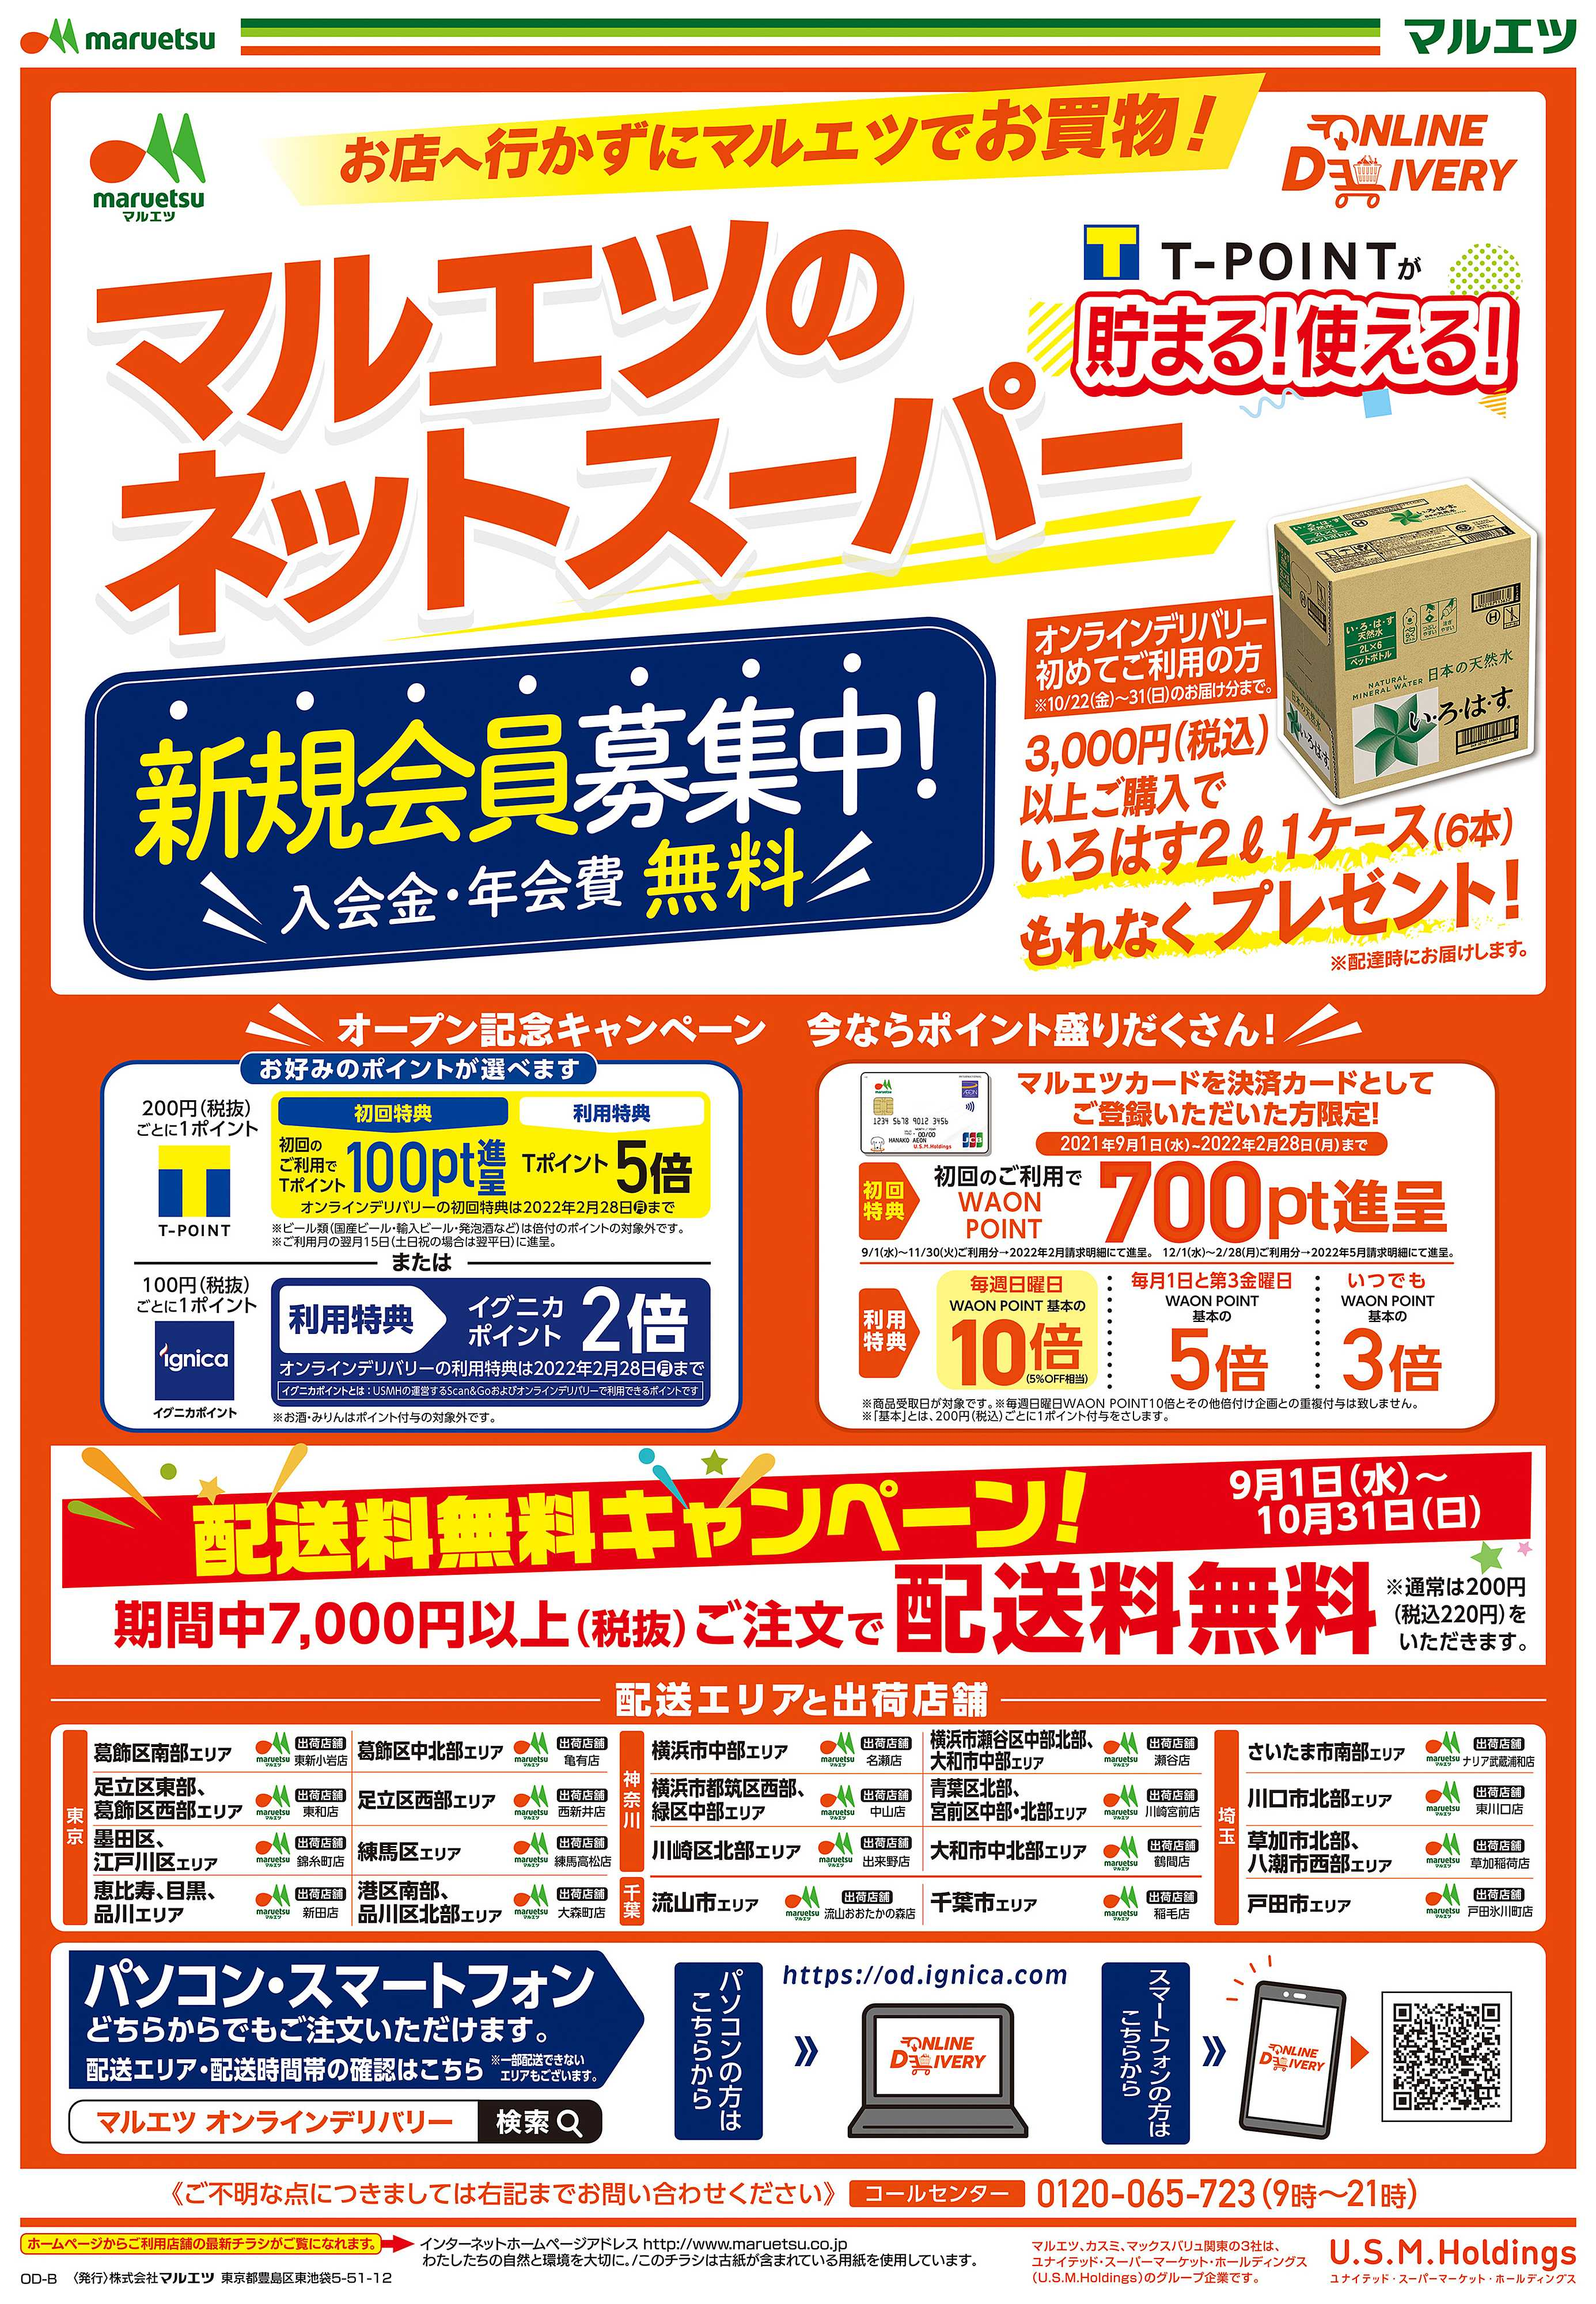 Compressed 211022 r online delivery od b%e8%a1%a8